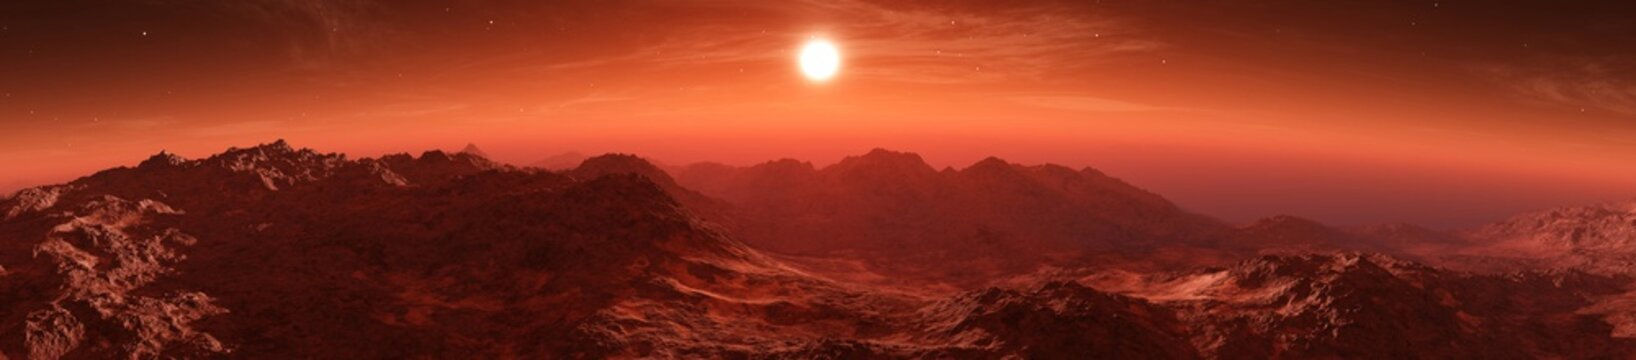 Mars at sunset, sunrise over the surface of an alien planet,